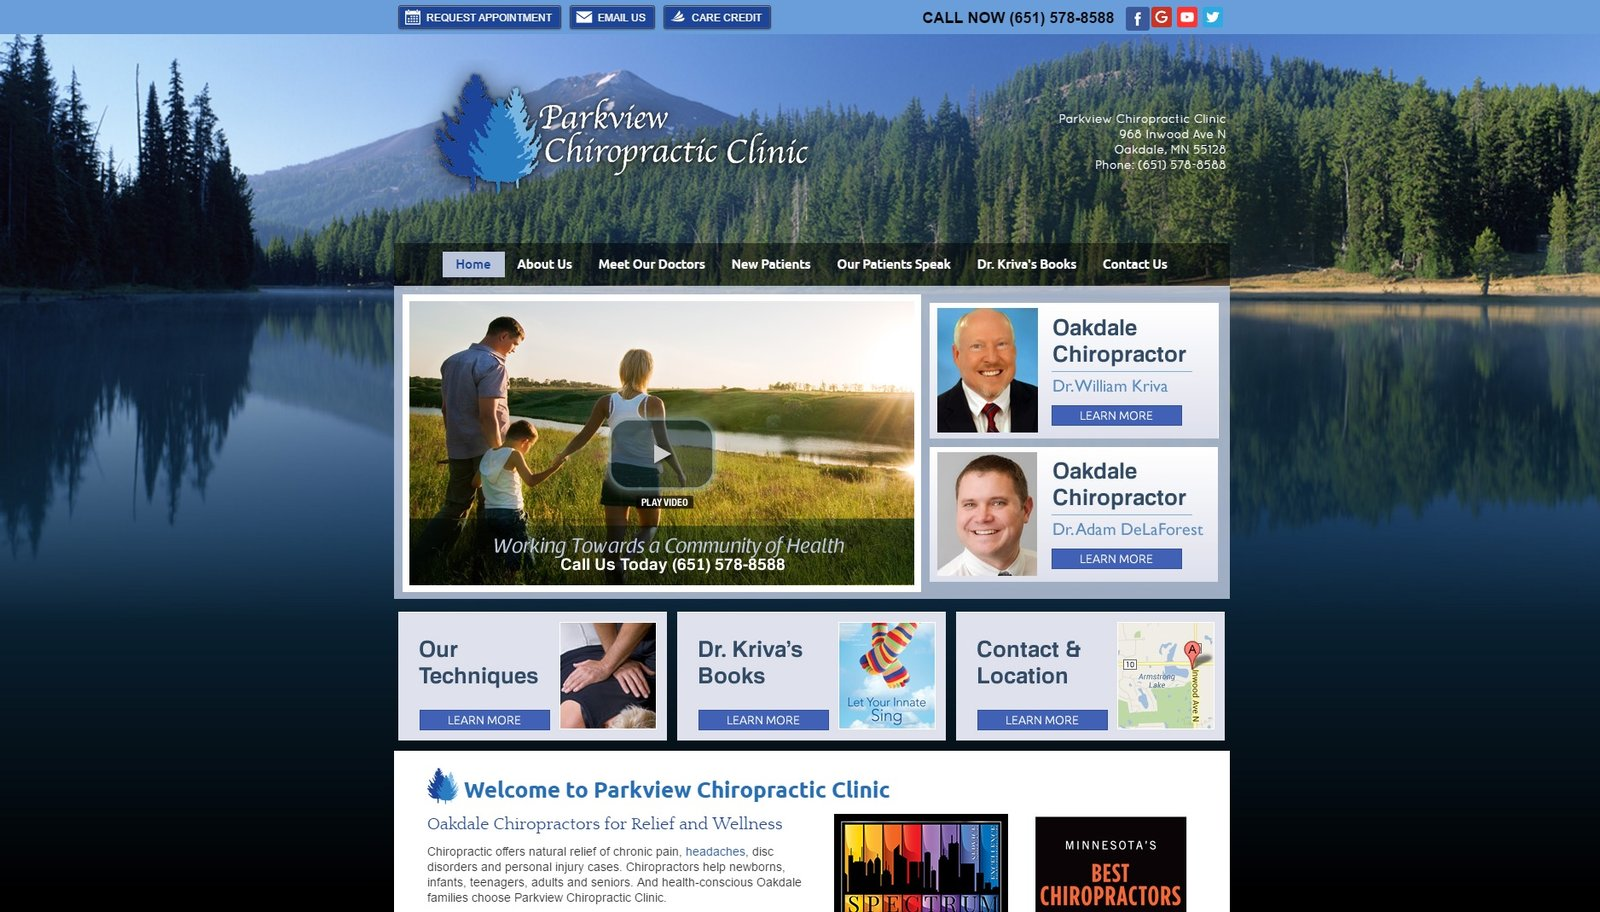 web design for Parkview Chiropractic